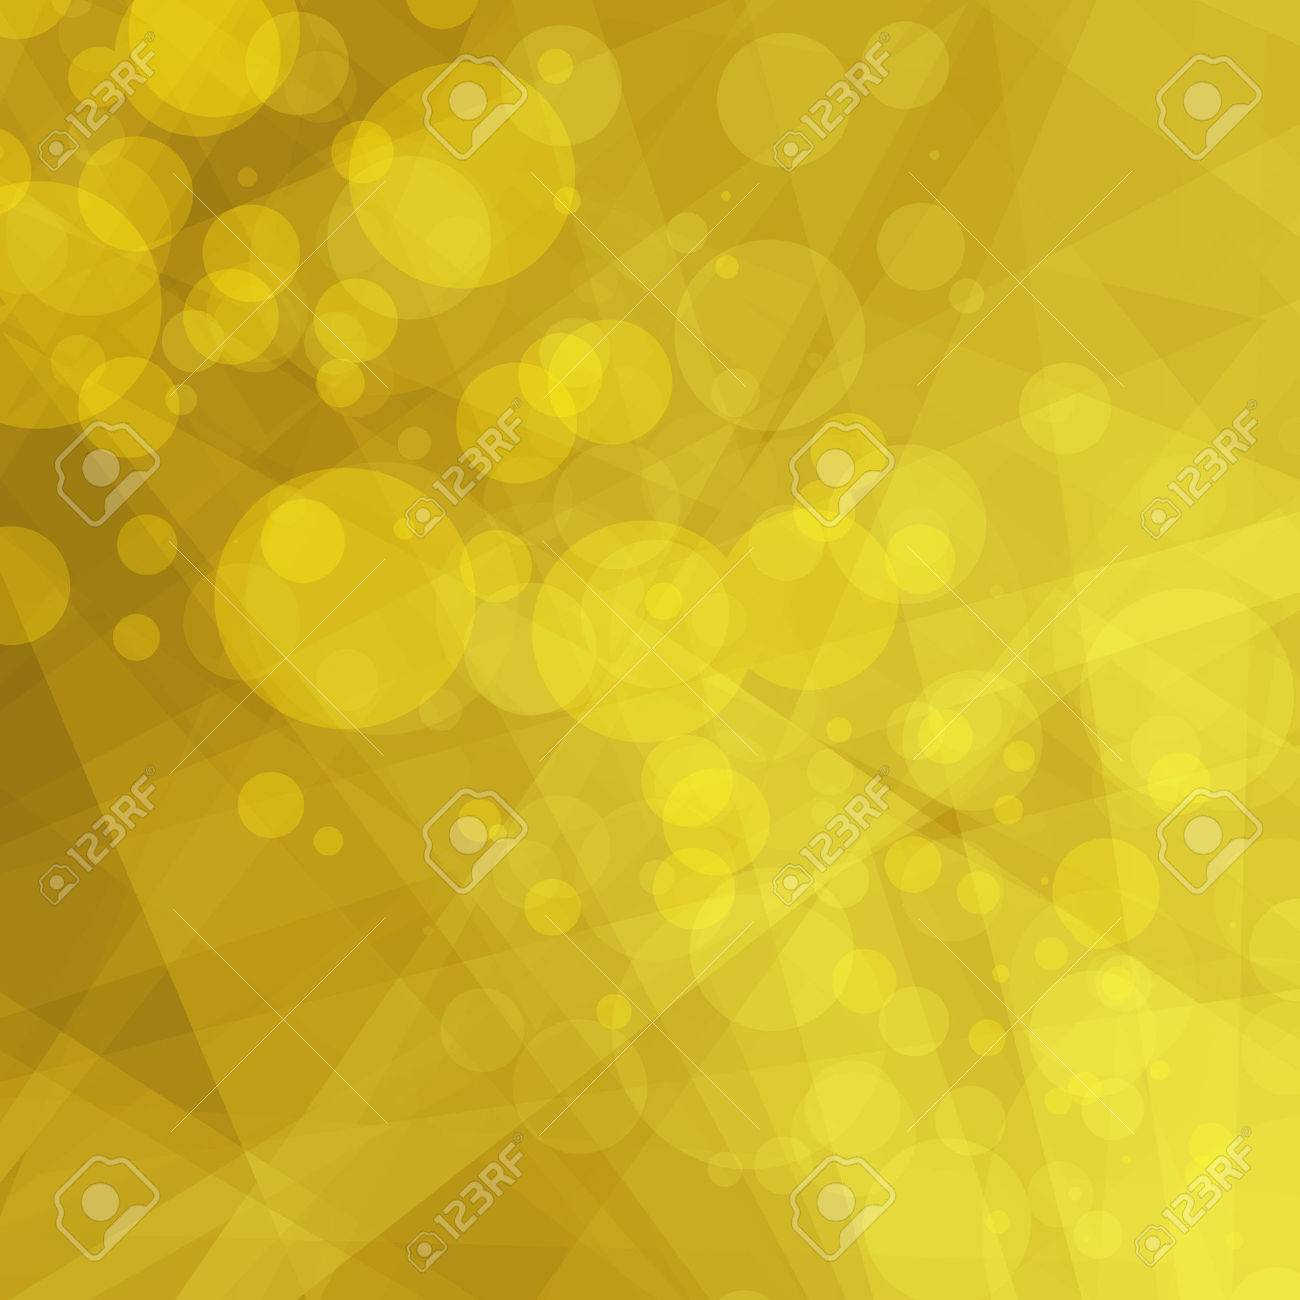 Shades Of Yellow Abstract Geometric Yellow Background Bright Shades Of Yellow